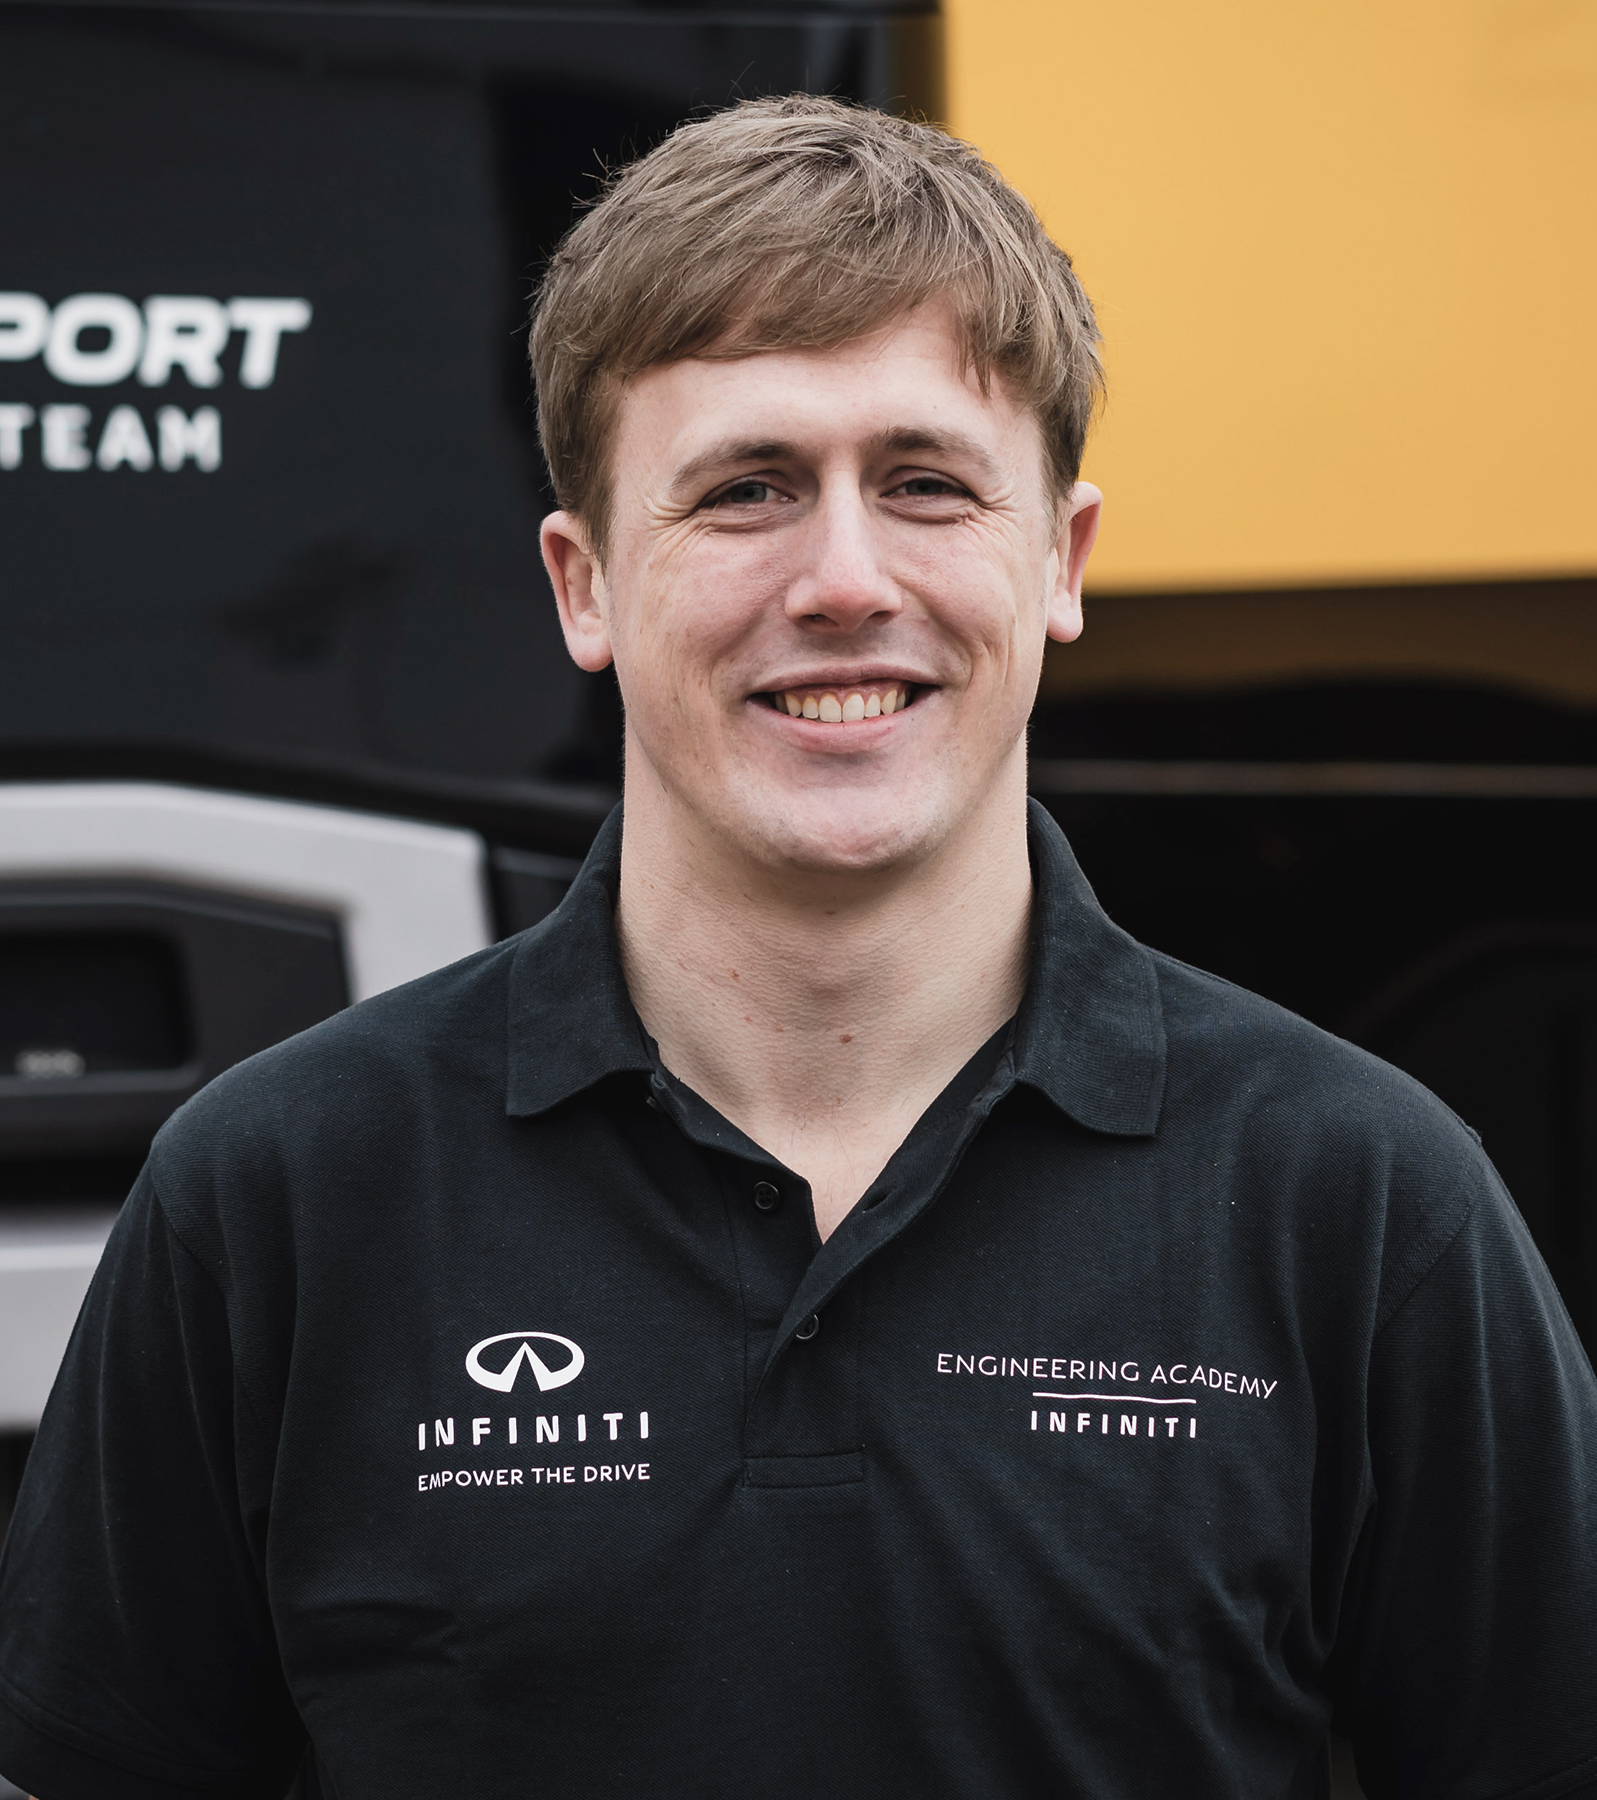 INFINITI Engineering Academy 2019 Engineer James Gourlie Profile